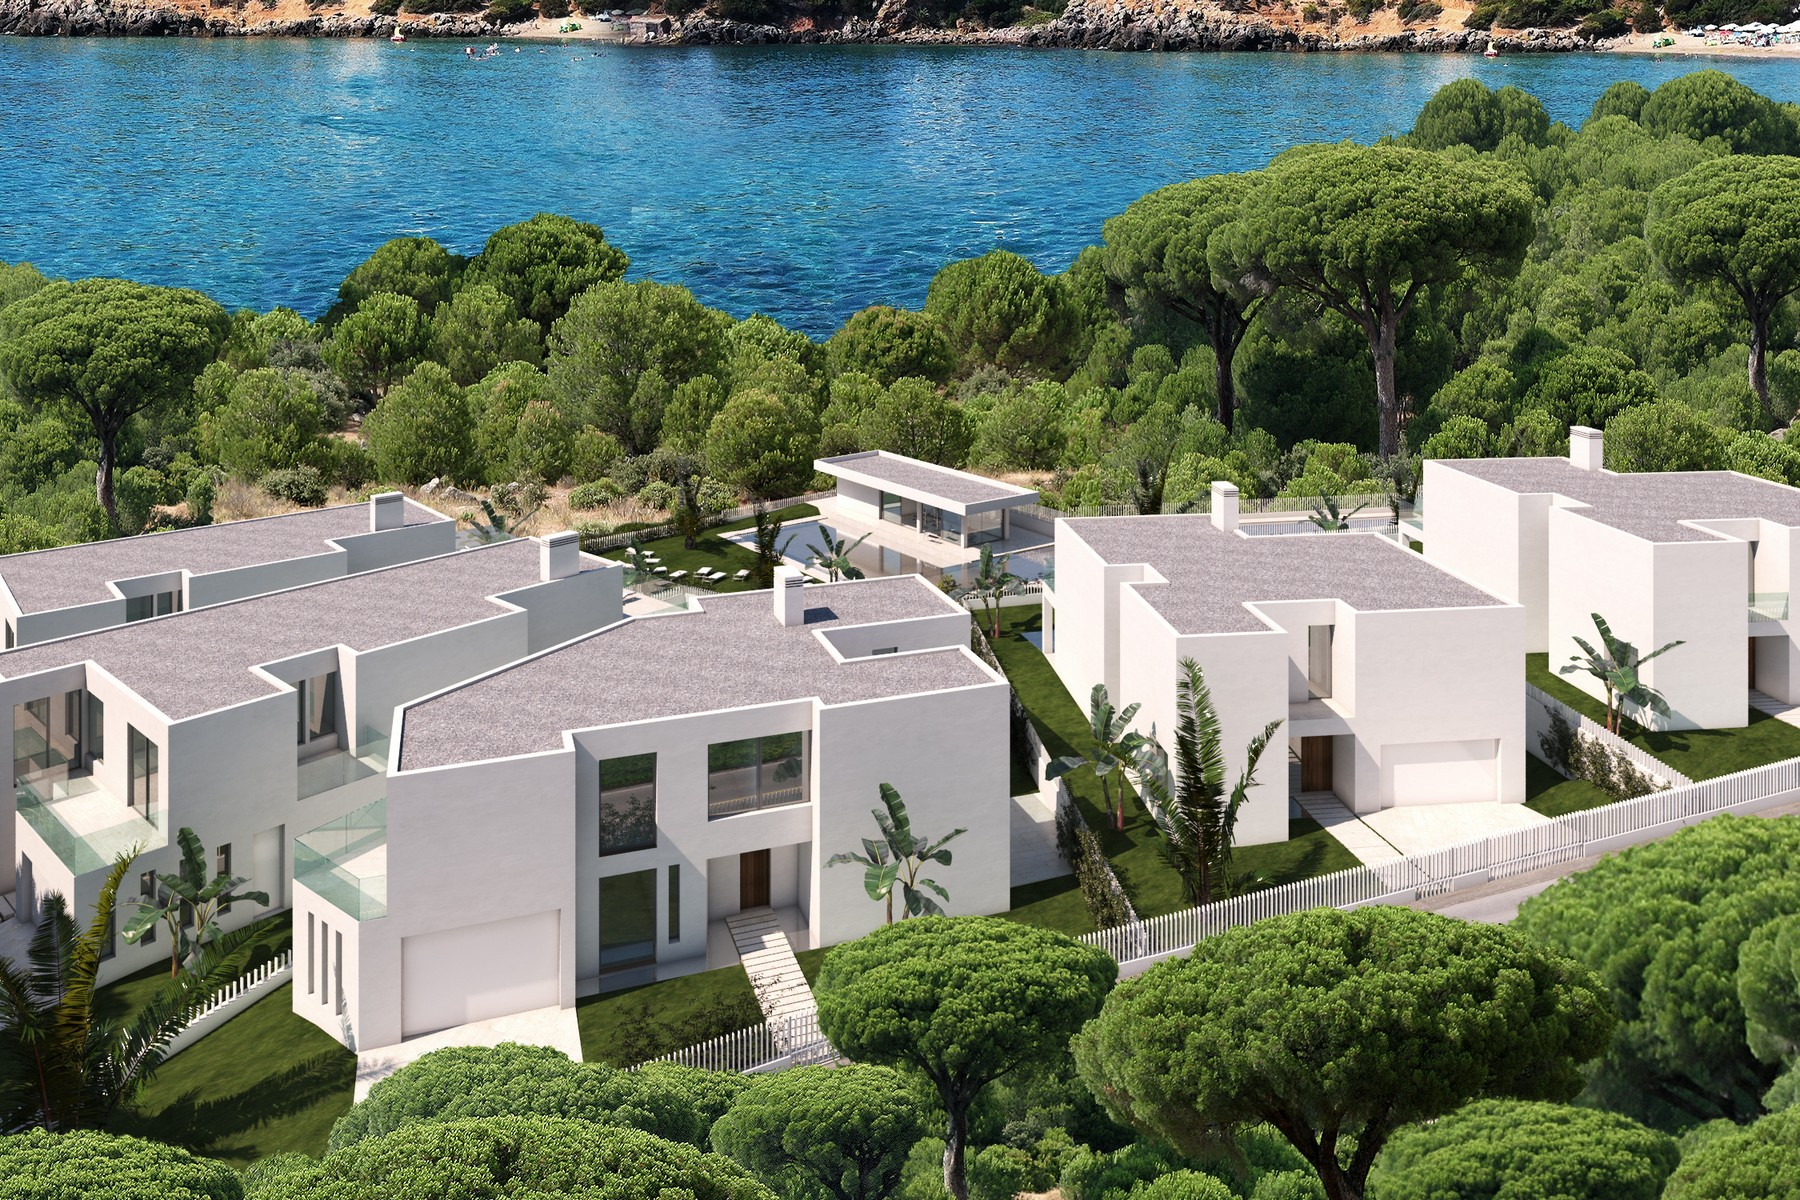 Single Family Home for Sale at Brand New Luxury Villas Close To Sea Cala Lleña Santa Eulalia, Ibiza, 07850 Spain